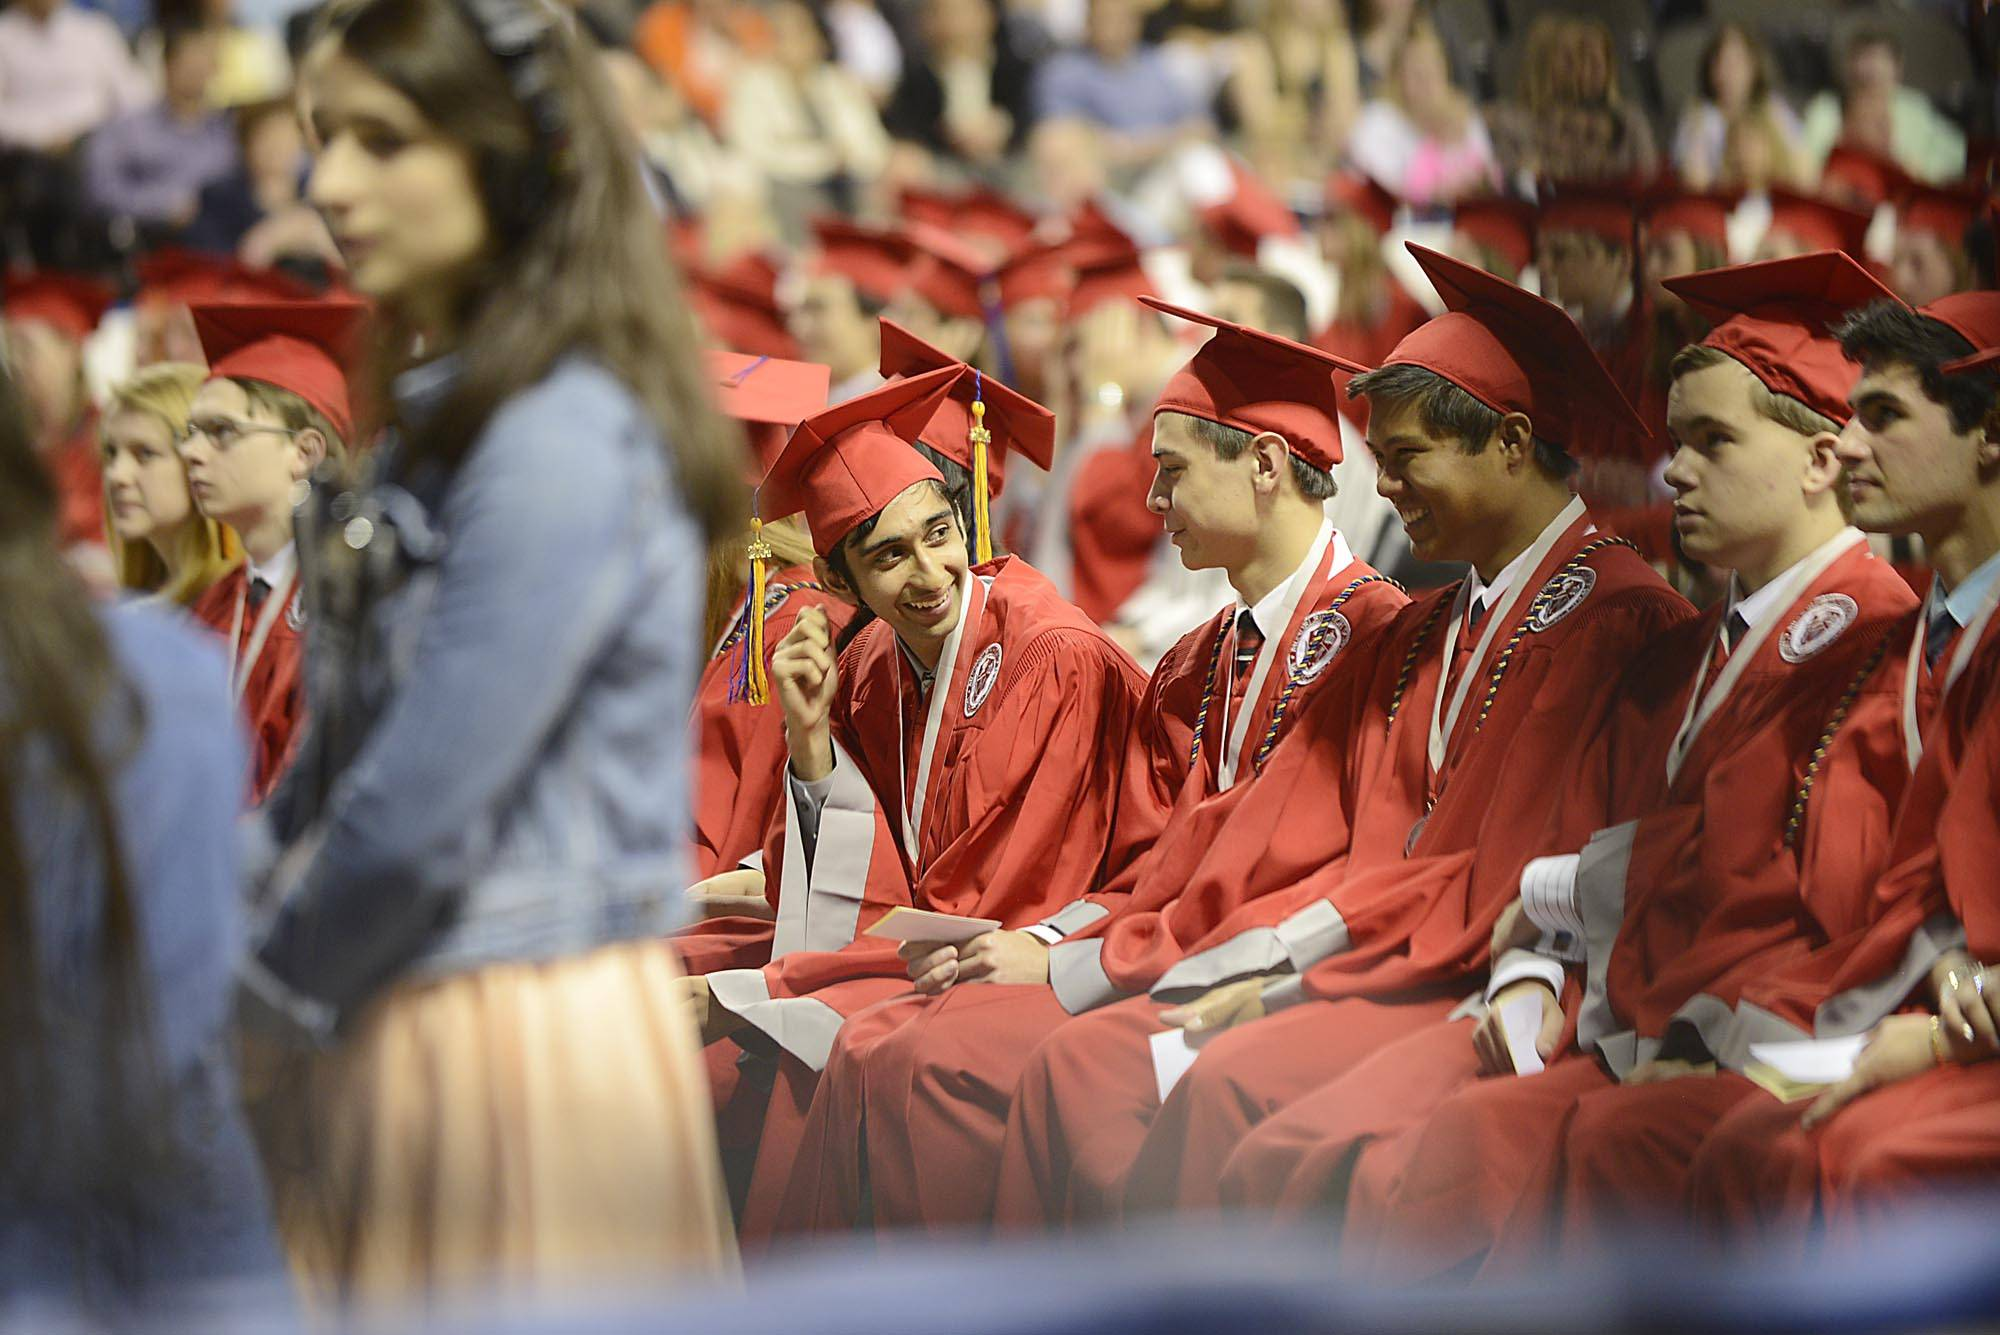 Valedictorian Aakash Choubal turns to his classmates after his address to the class Sunday at the Mundelein High school Commencement Exercises at Sears Center in Hoffman Estates.